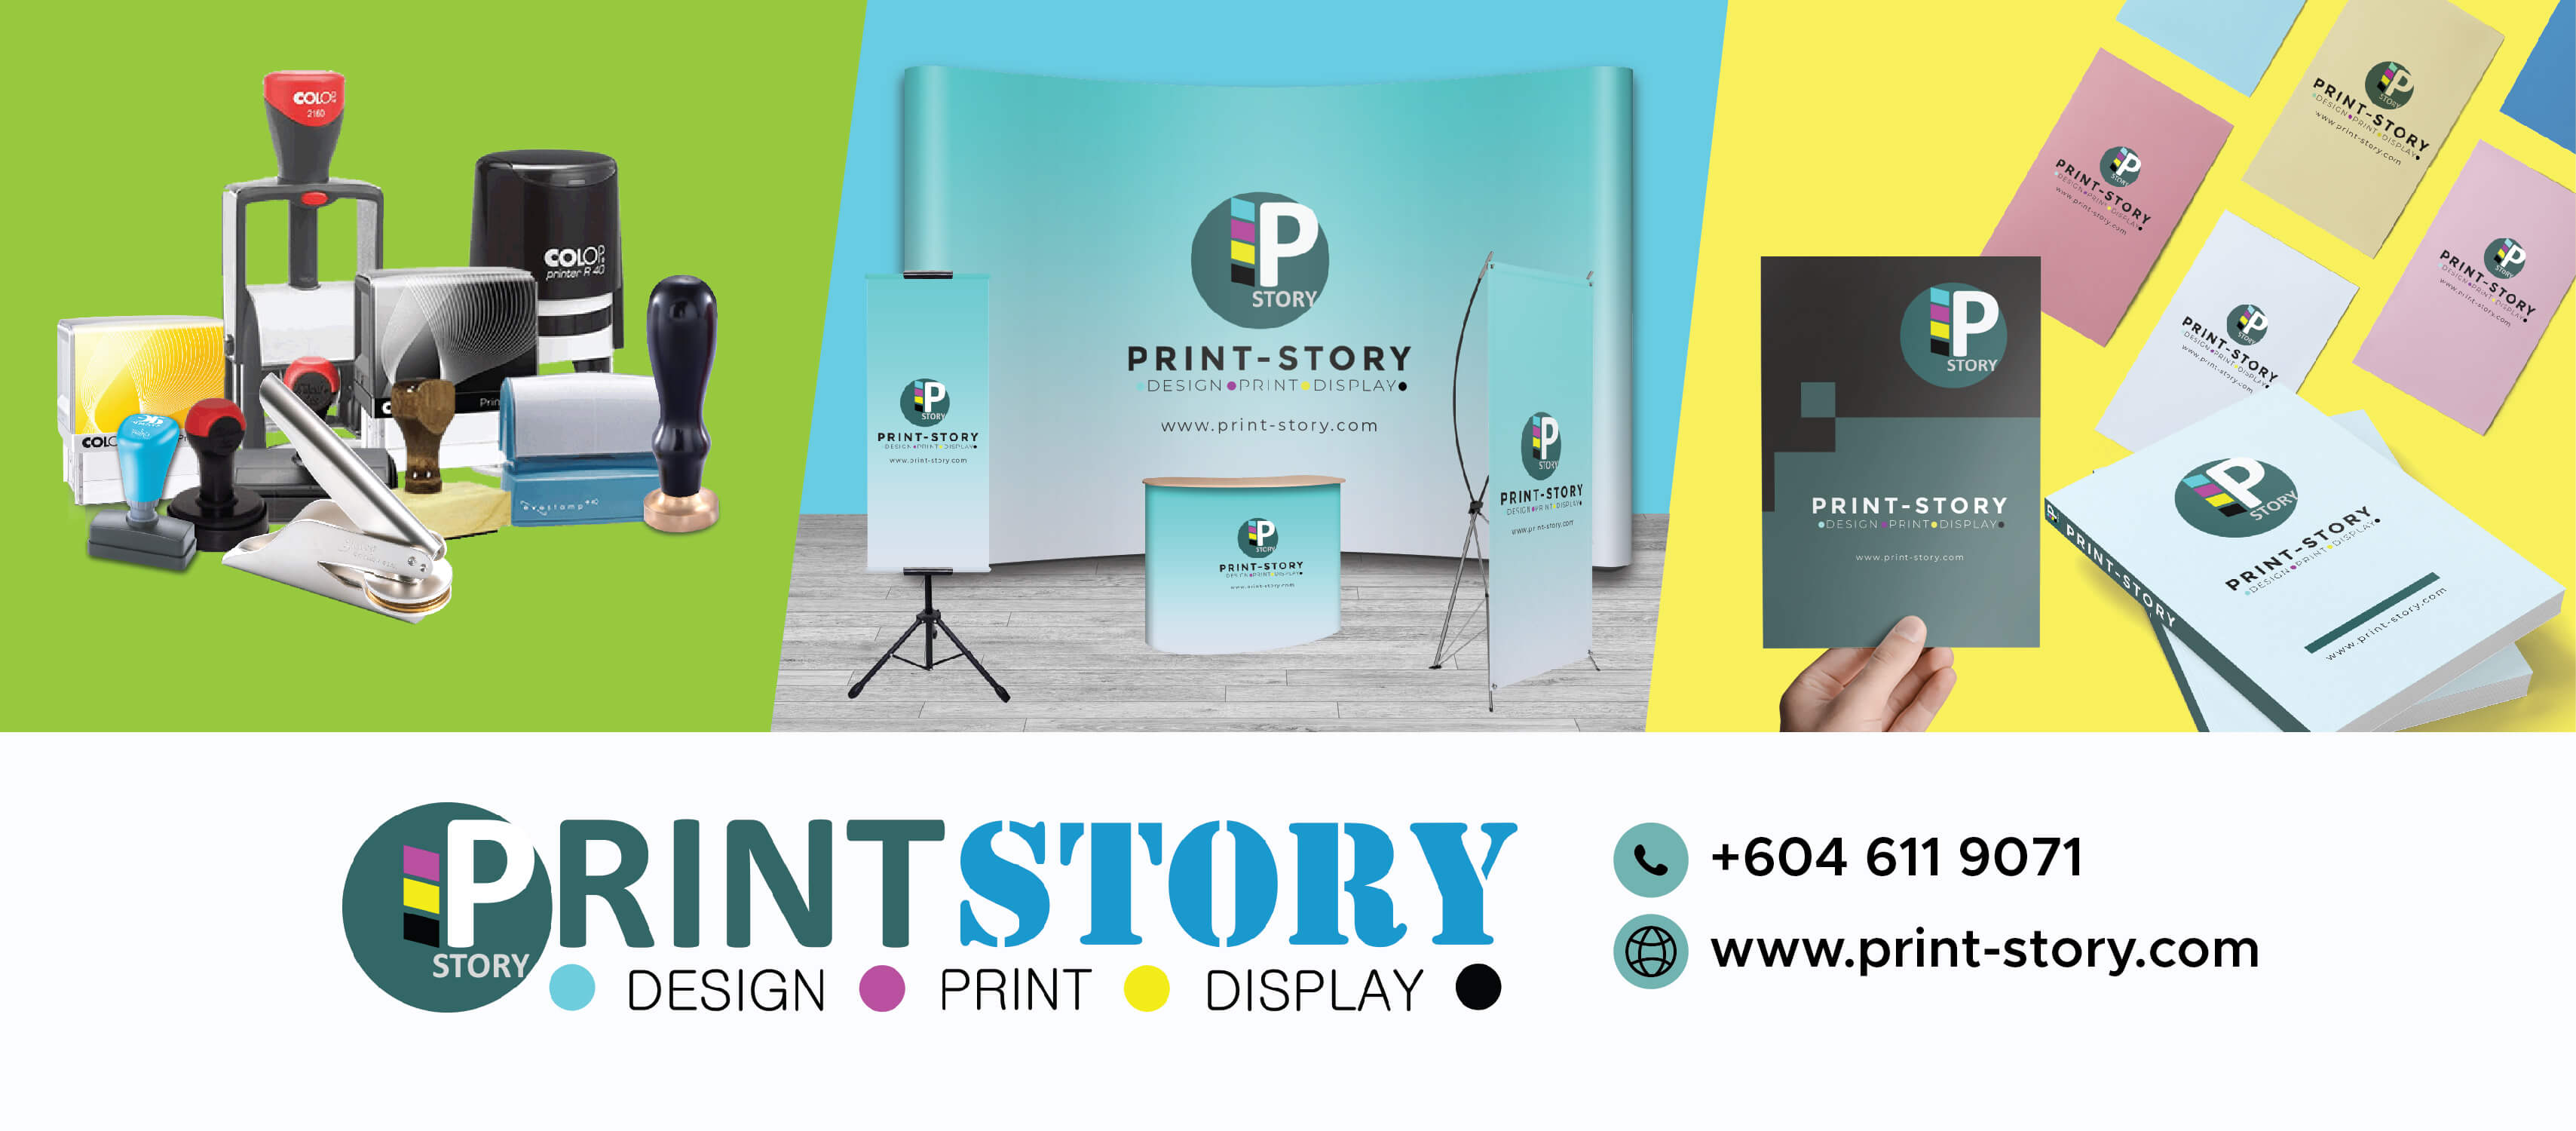 G&G Stationery and Marketing Sdn Bhd